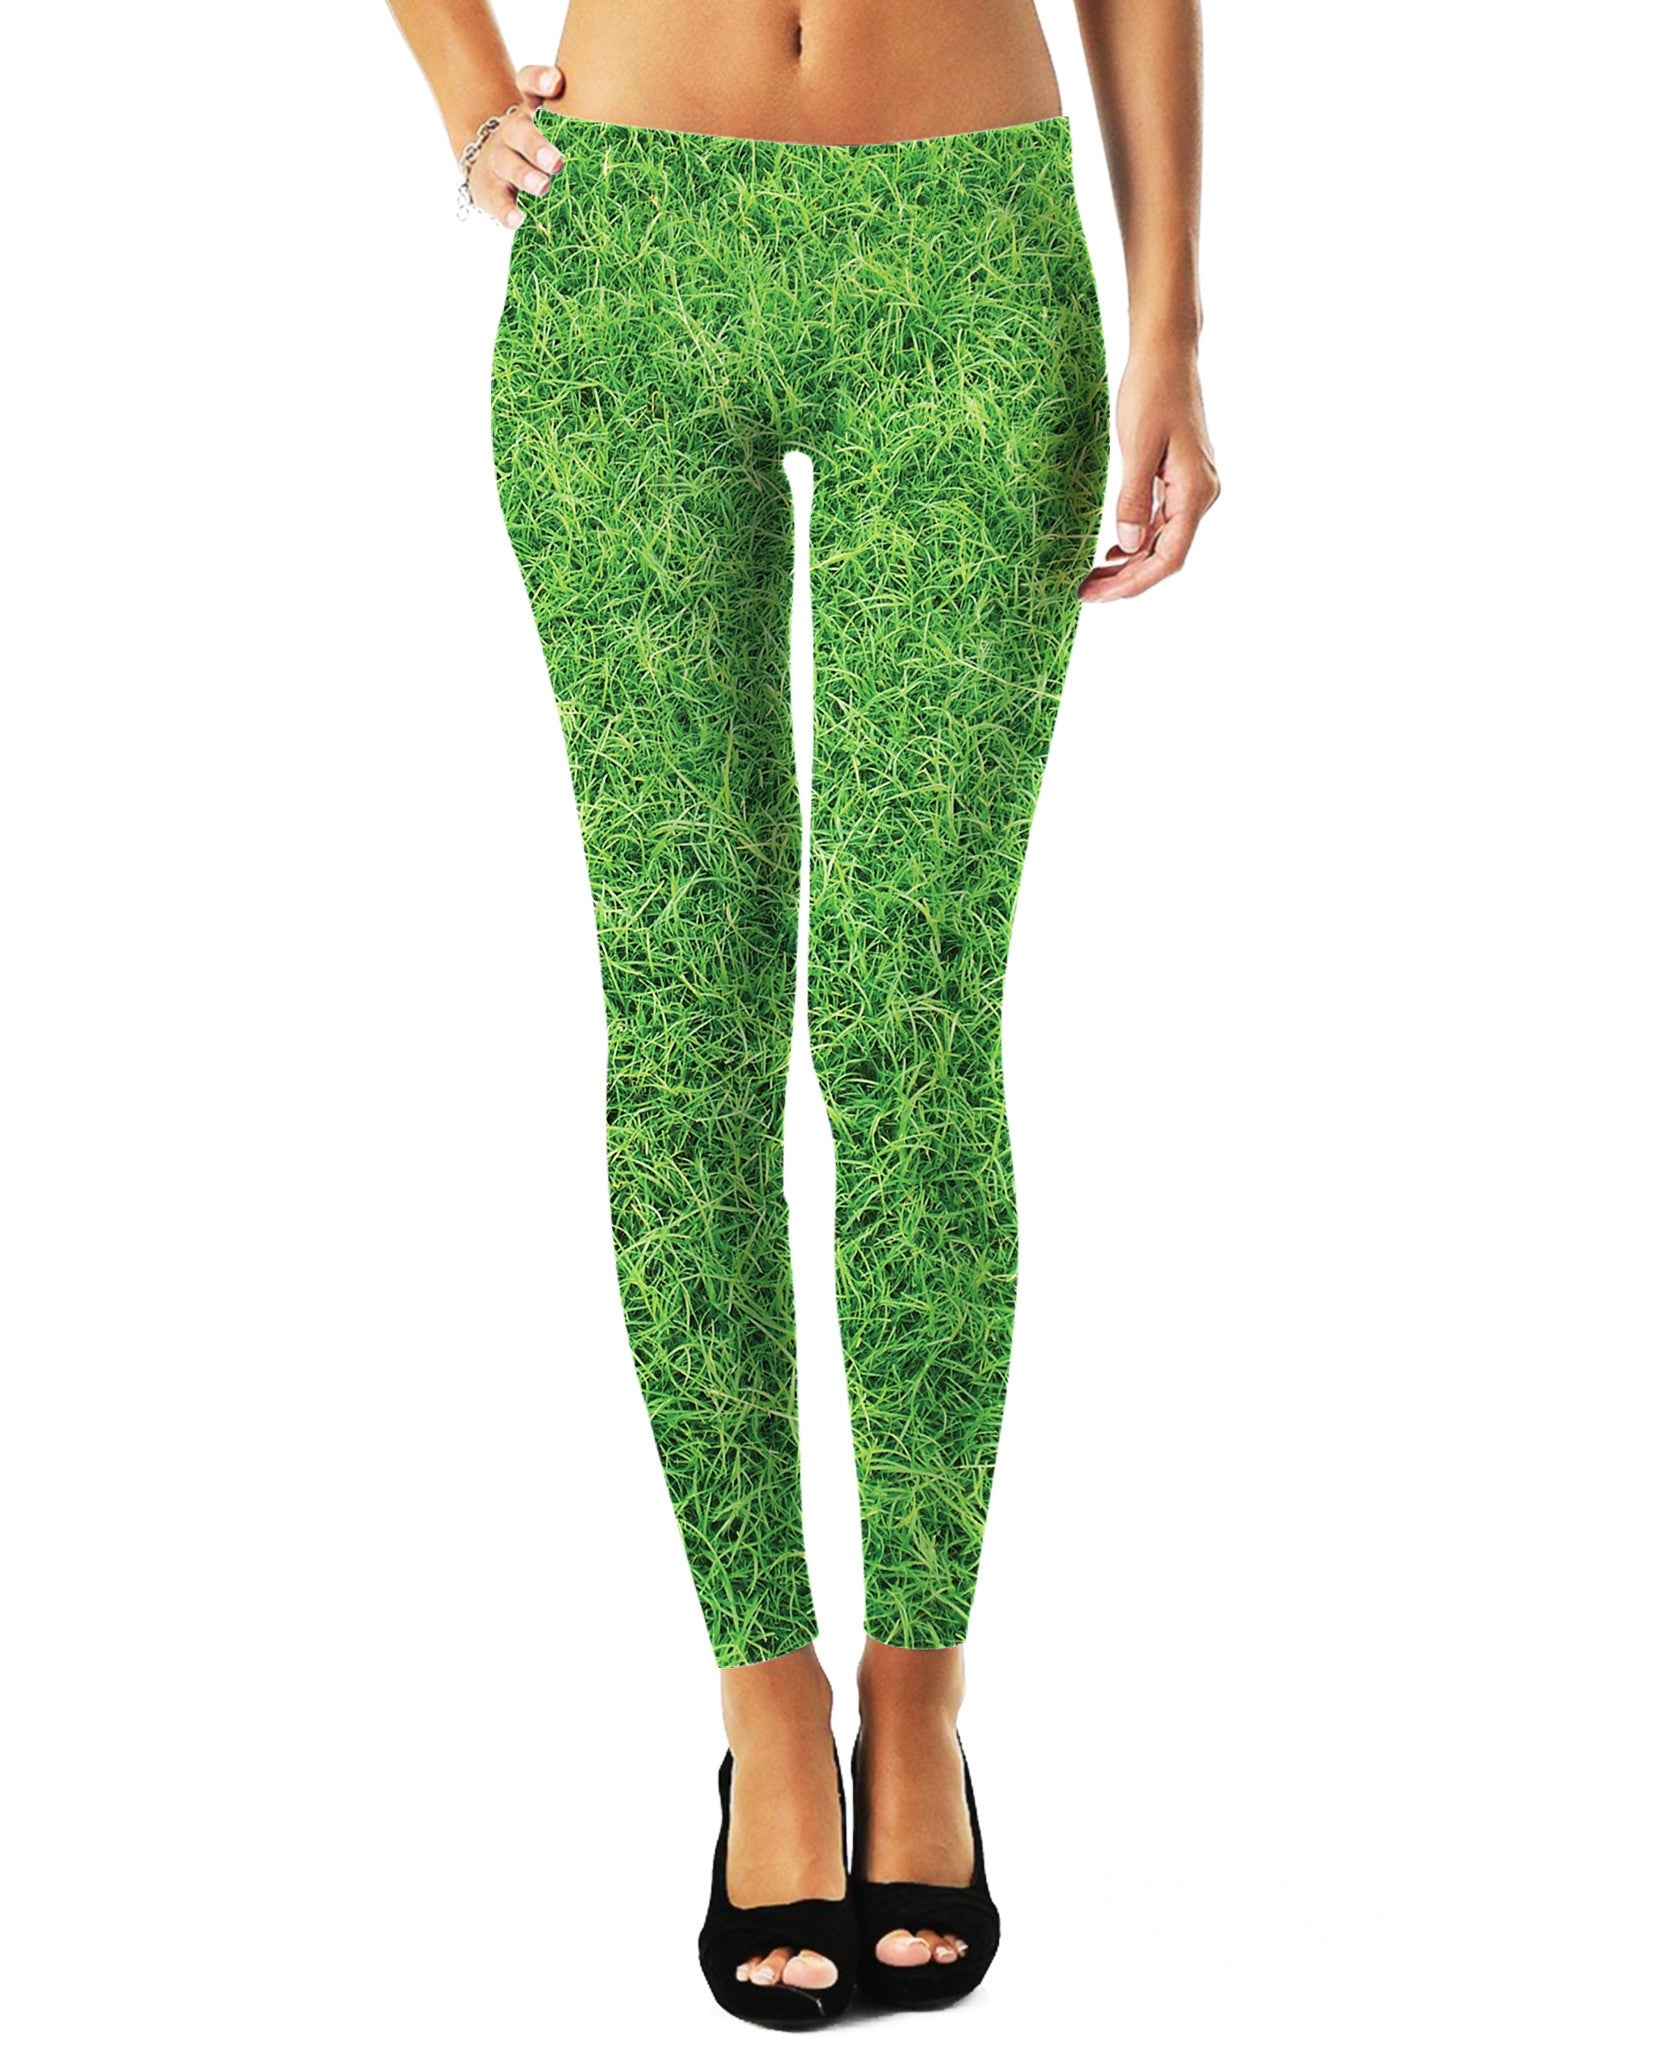 Grass Leggings